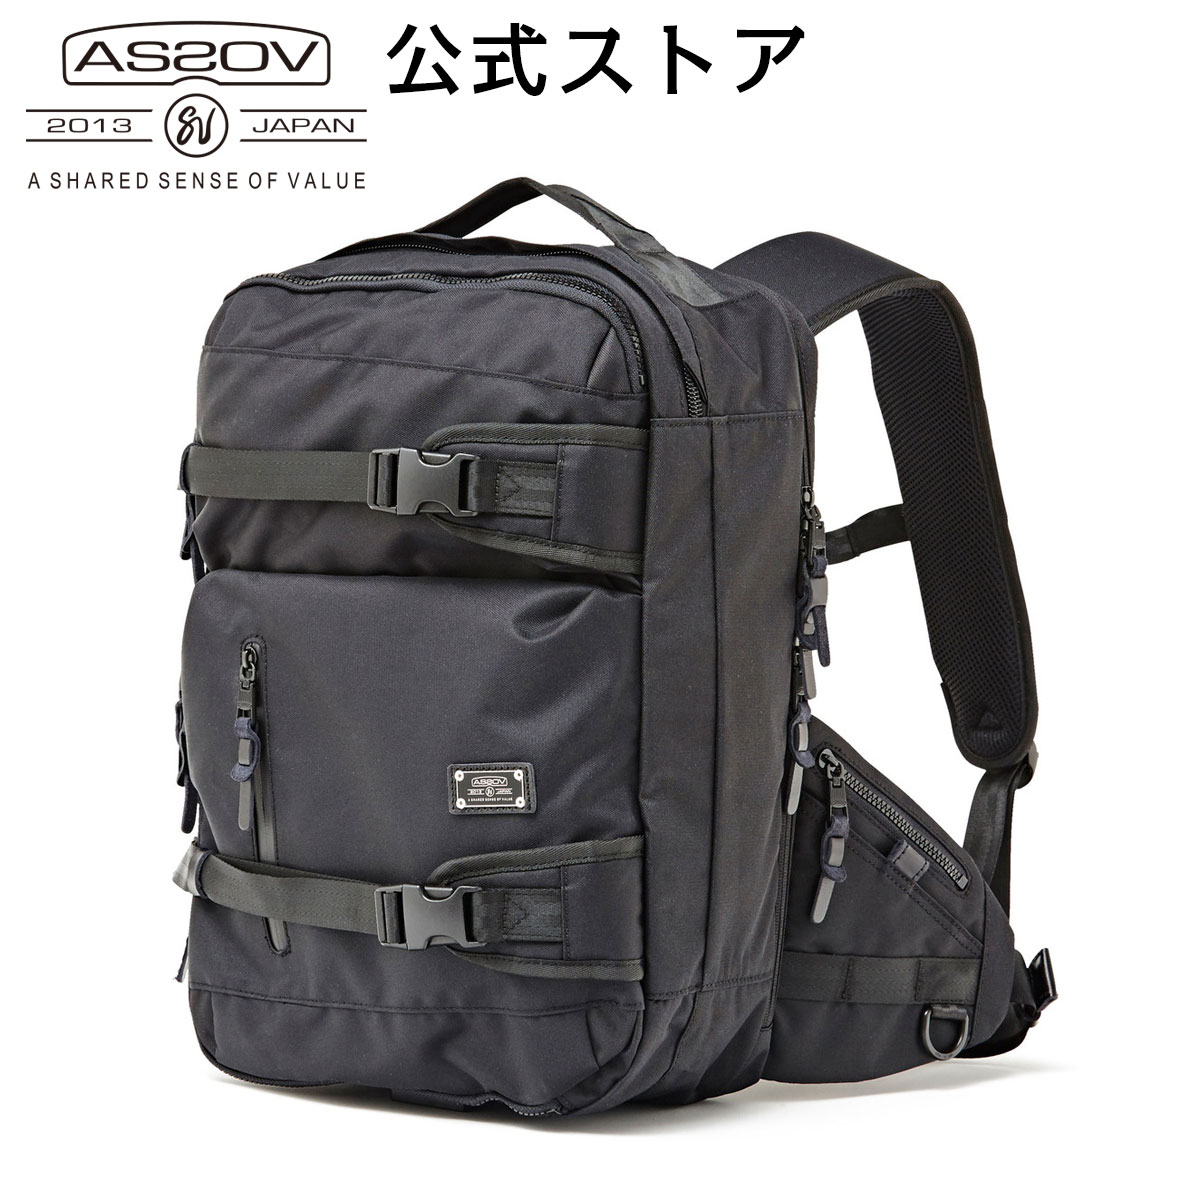 【AS2OV公式通販】 AS2OV (アッソブ) CORDURA DOBBY 305D 3WAY BACK PACK S BLACK / バックパック 061405